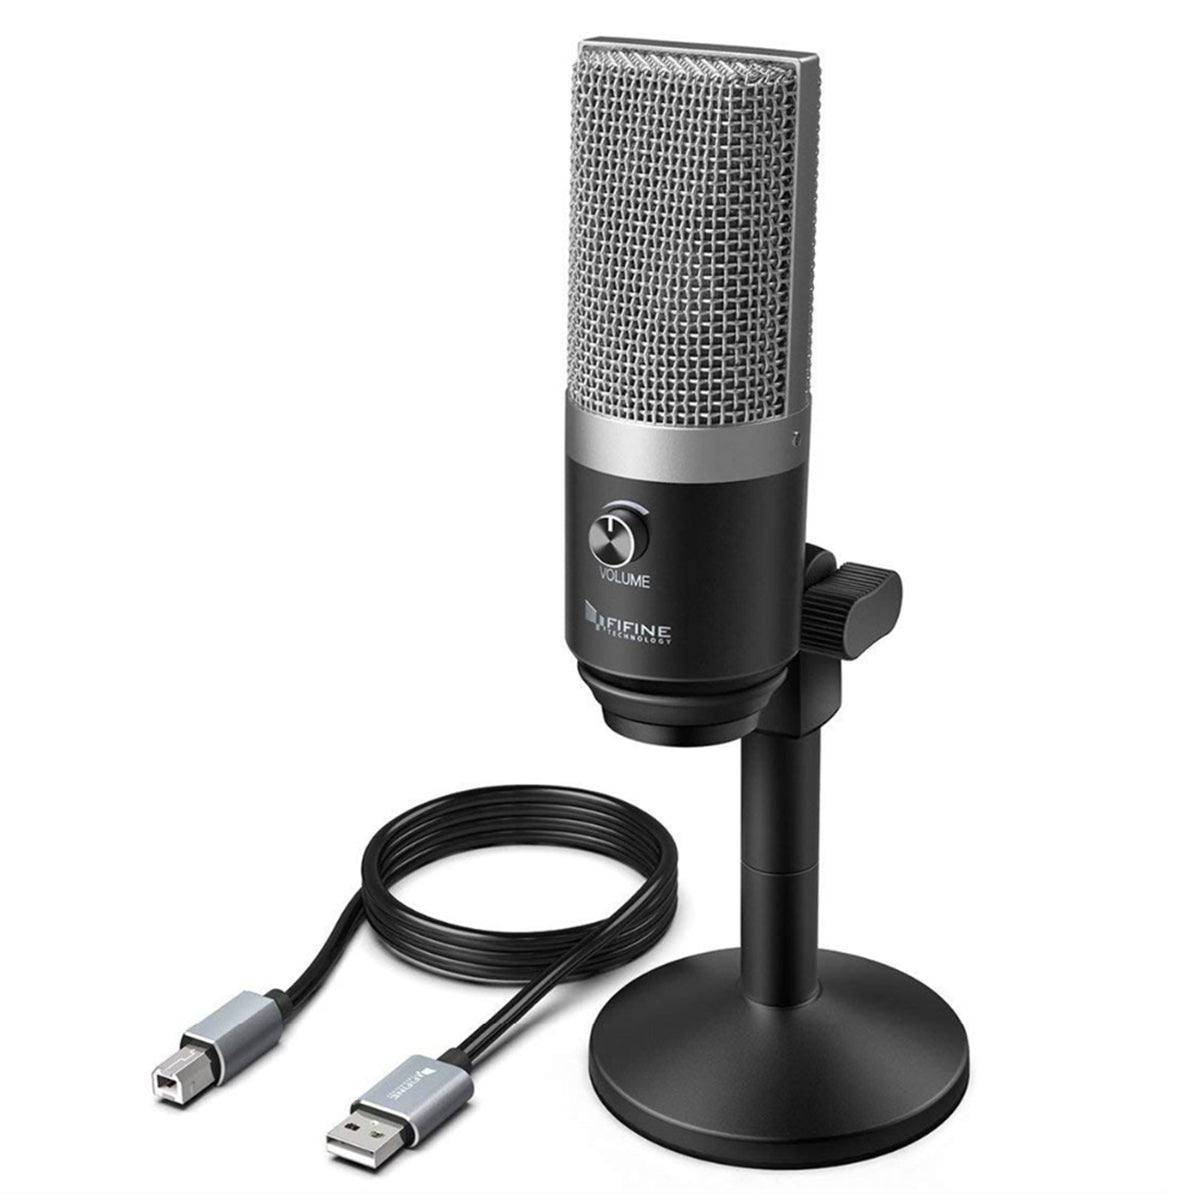 USB Microphone for Mac laptop and Computers